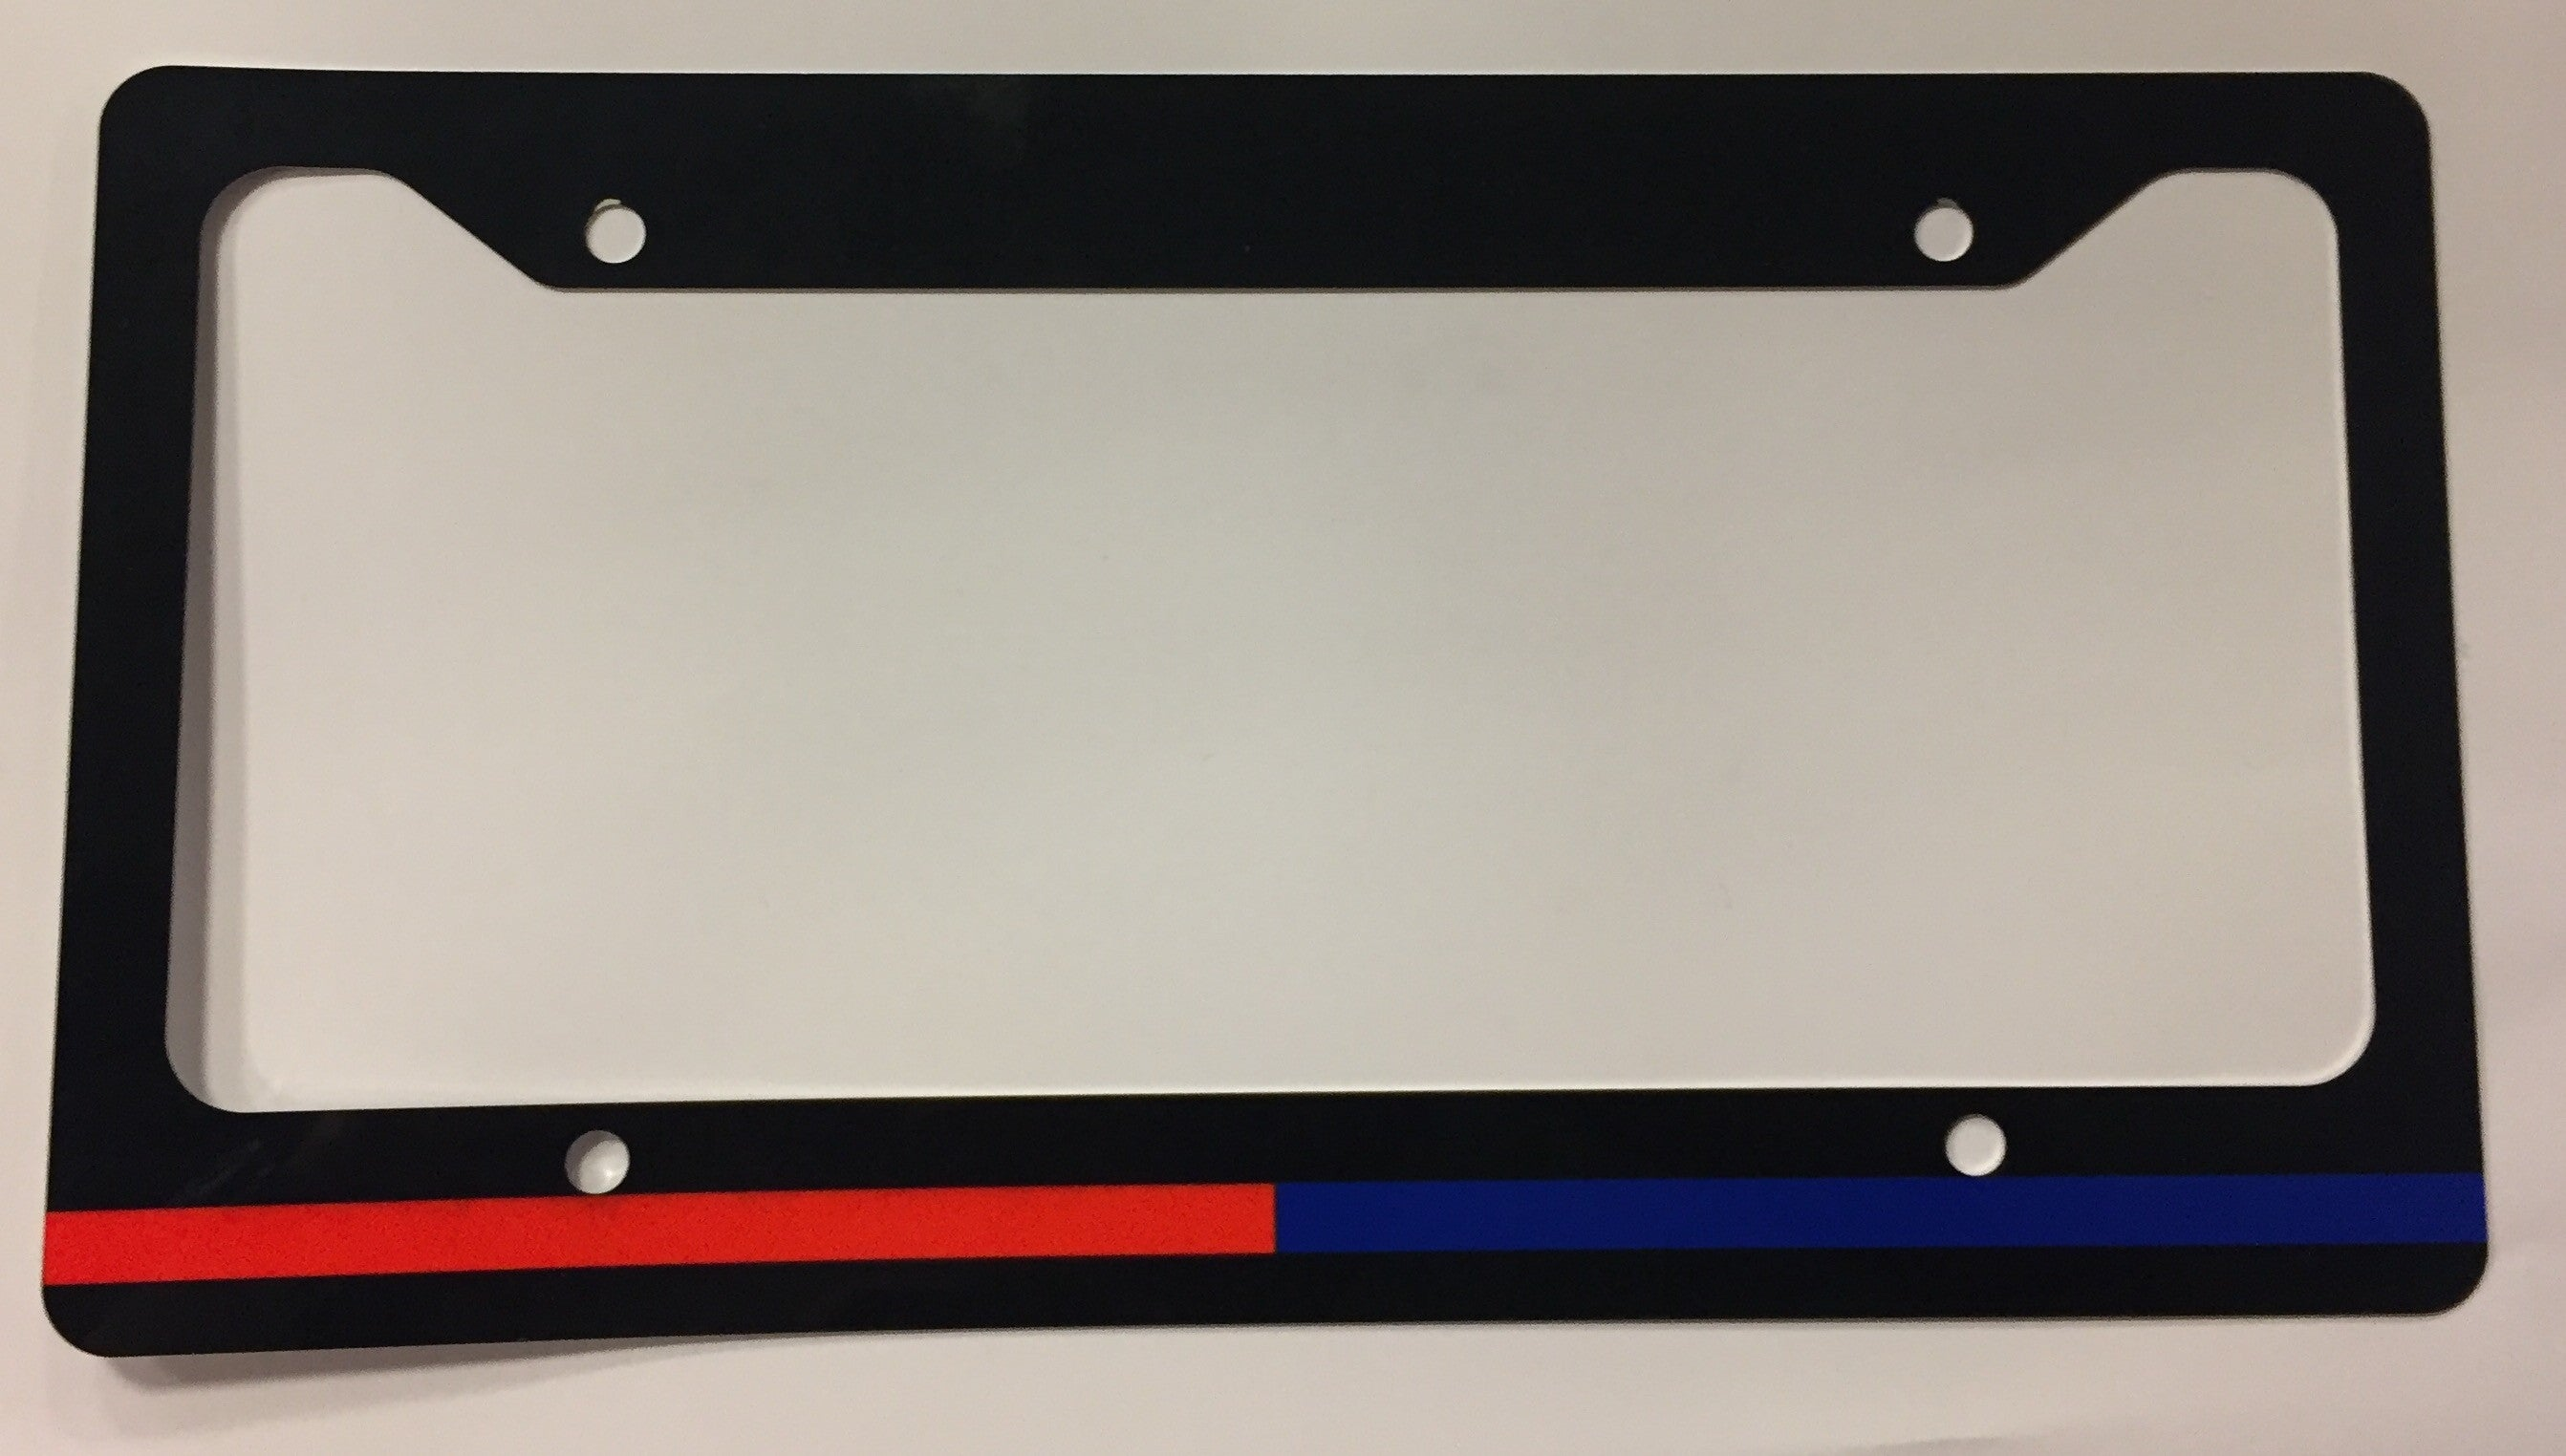 Police and FireFighter License Plate Frame